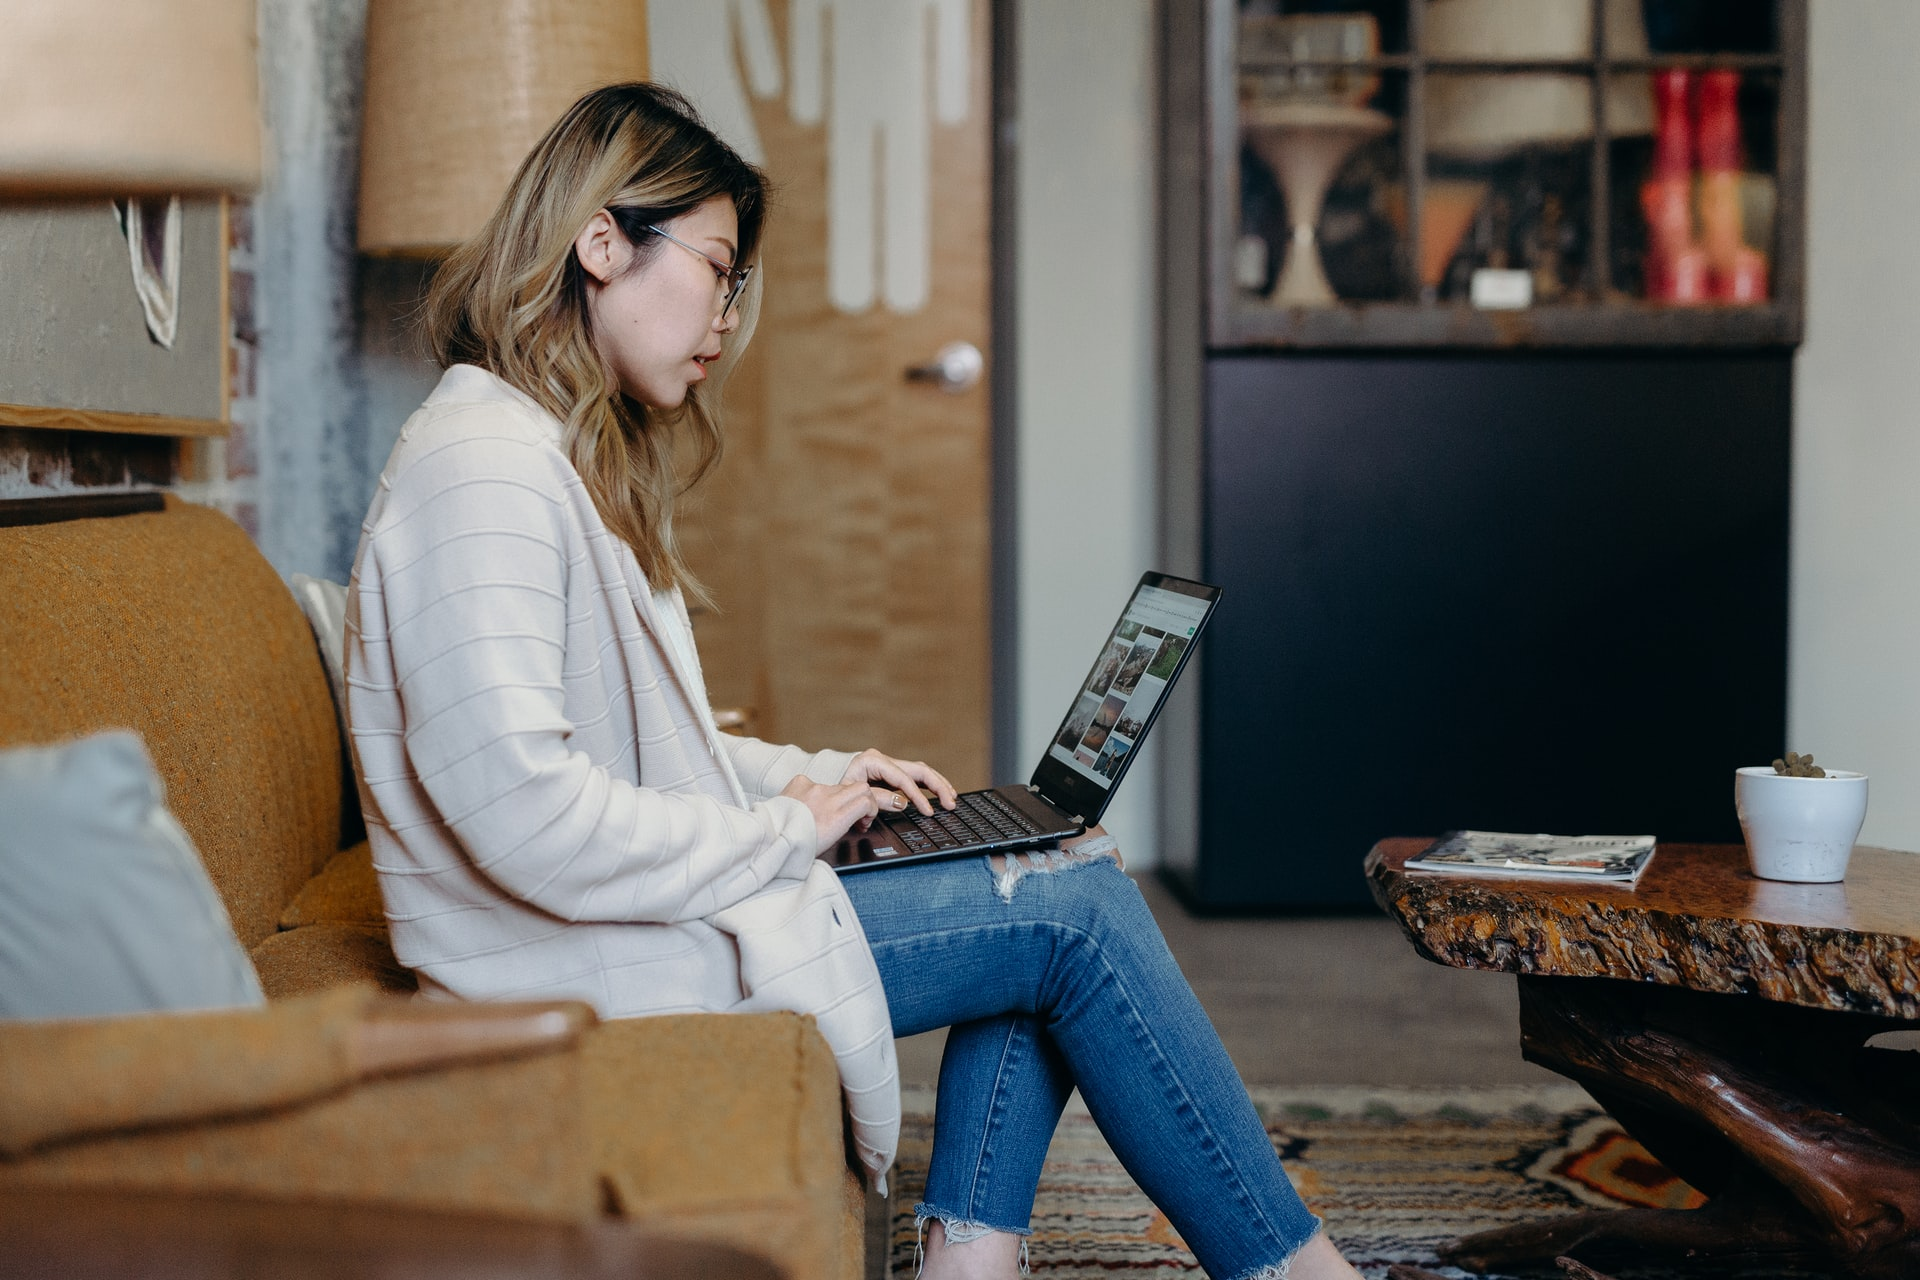 Gen Z: What does the new generation think about remote work?